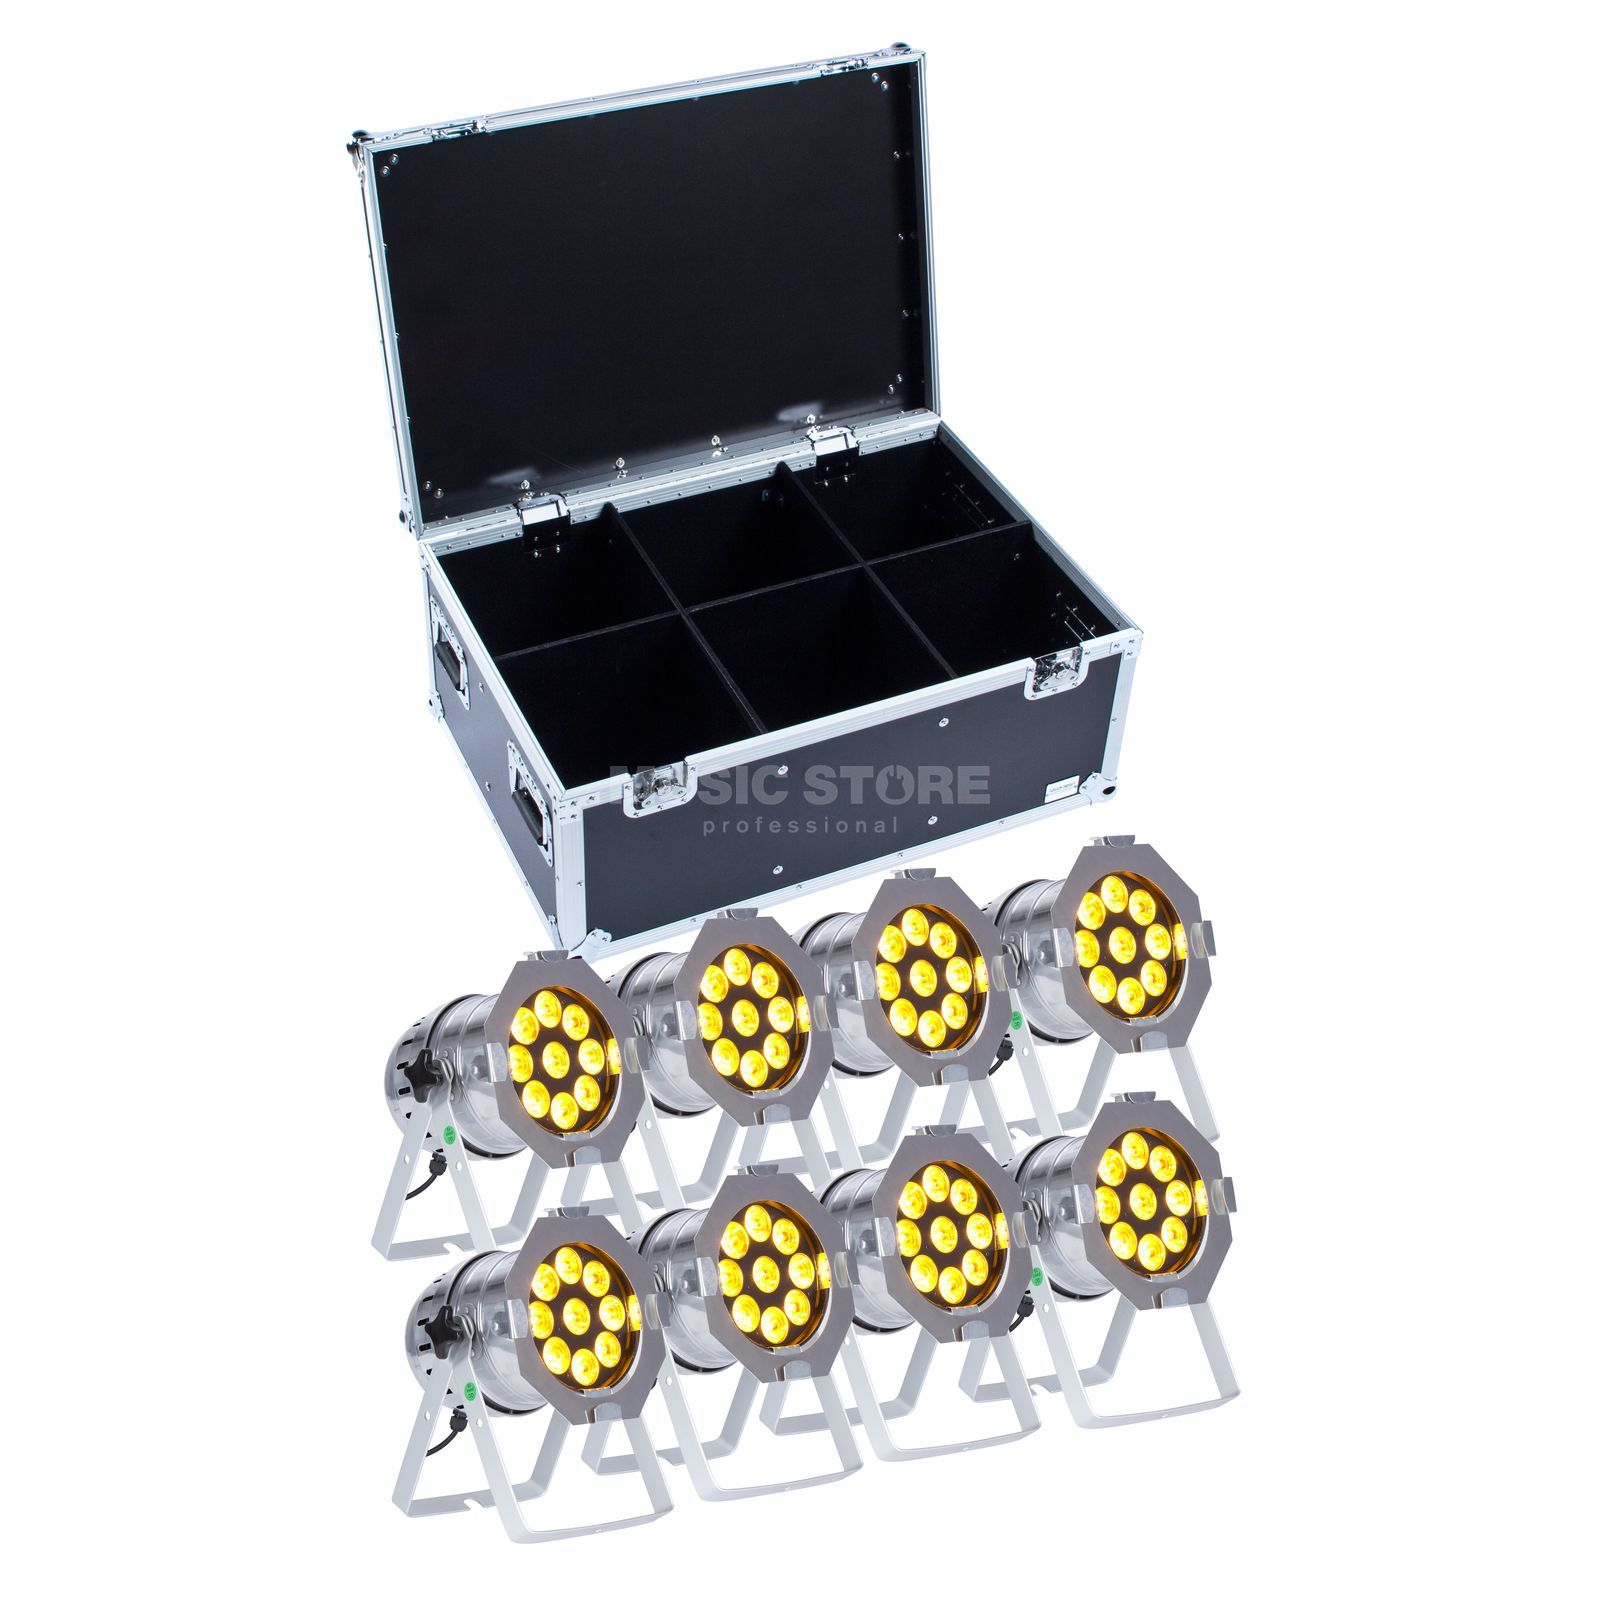 SET lightmaXX LED PAR 56 COMPLETE polish (8x) inkl. Case Produktbild